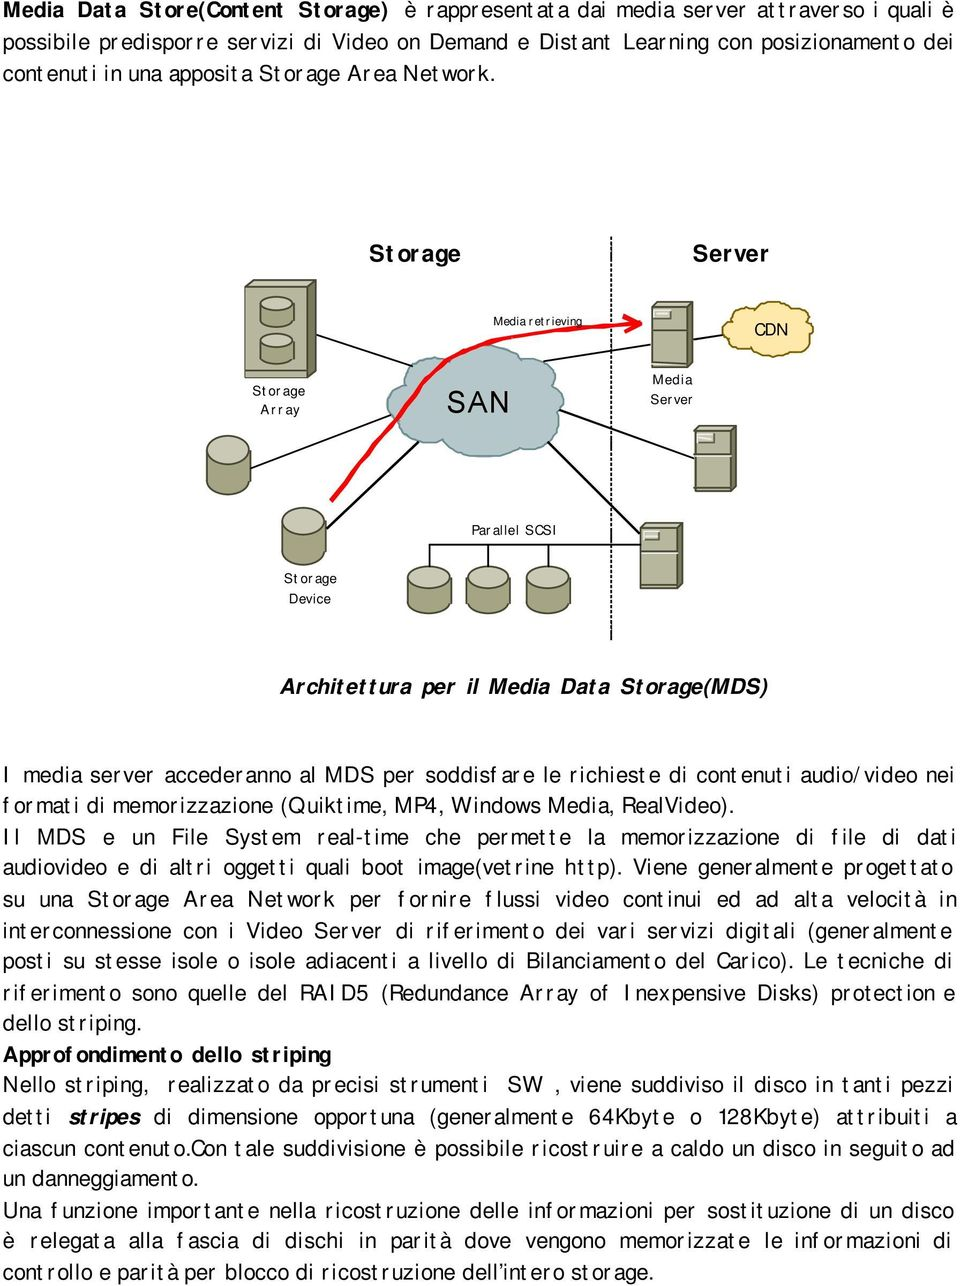 Storage Server Media retrieving CDN Storage Array SAN Media Server Parallel SCSI Storage Device Architettura per il Media Data Storage(MDS) I media server accederanno al MDS per soddisfare le